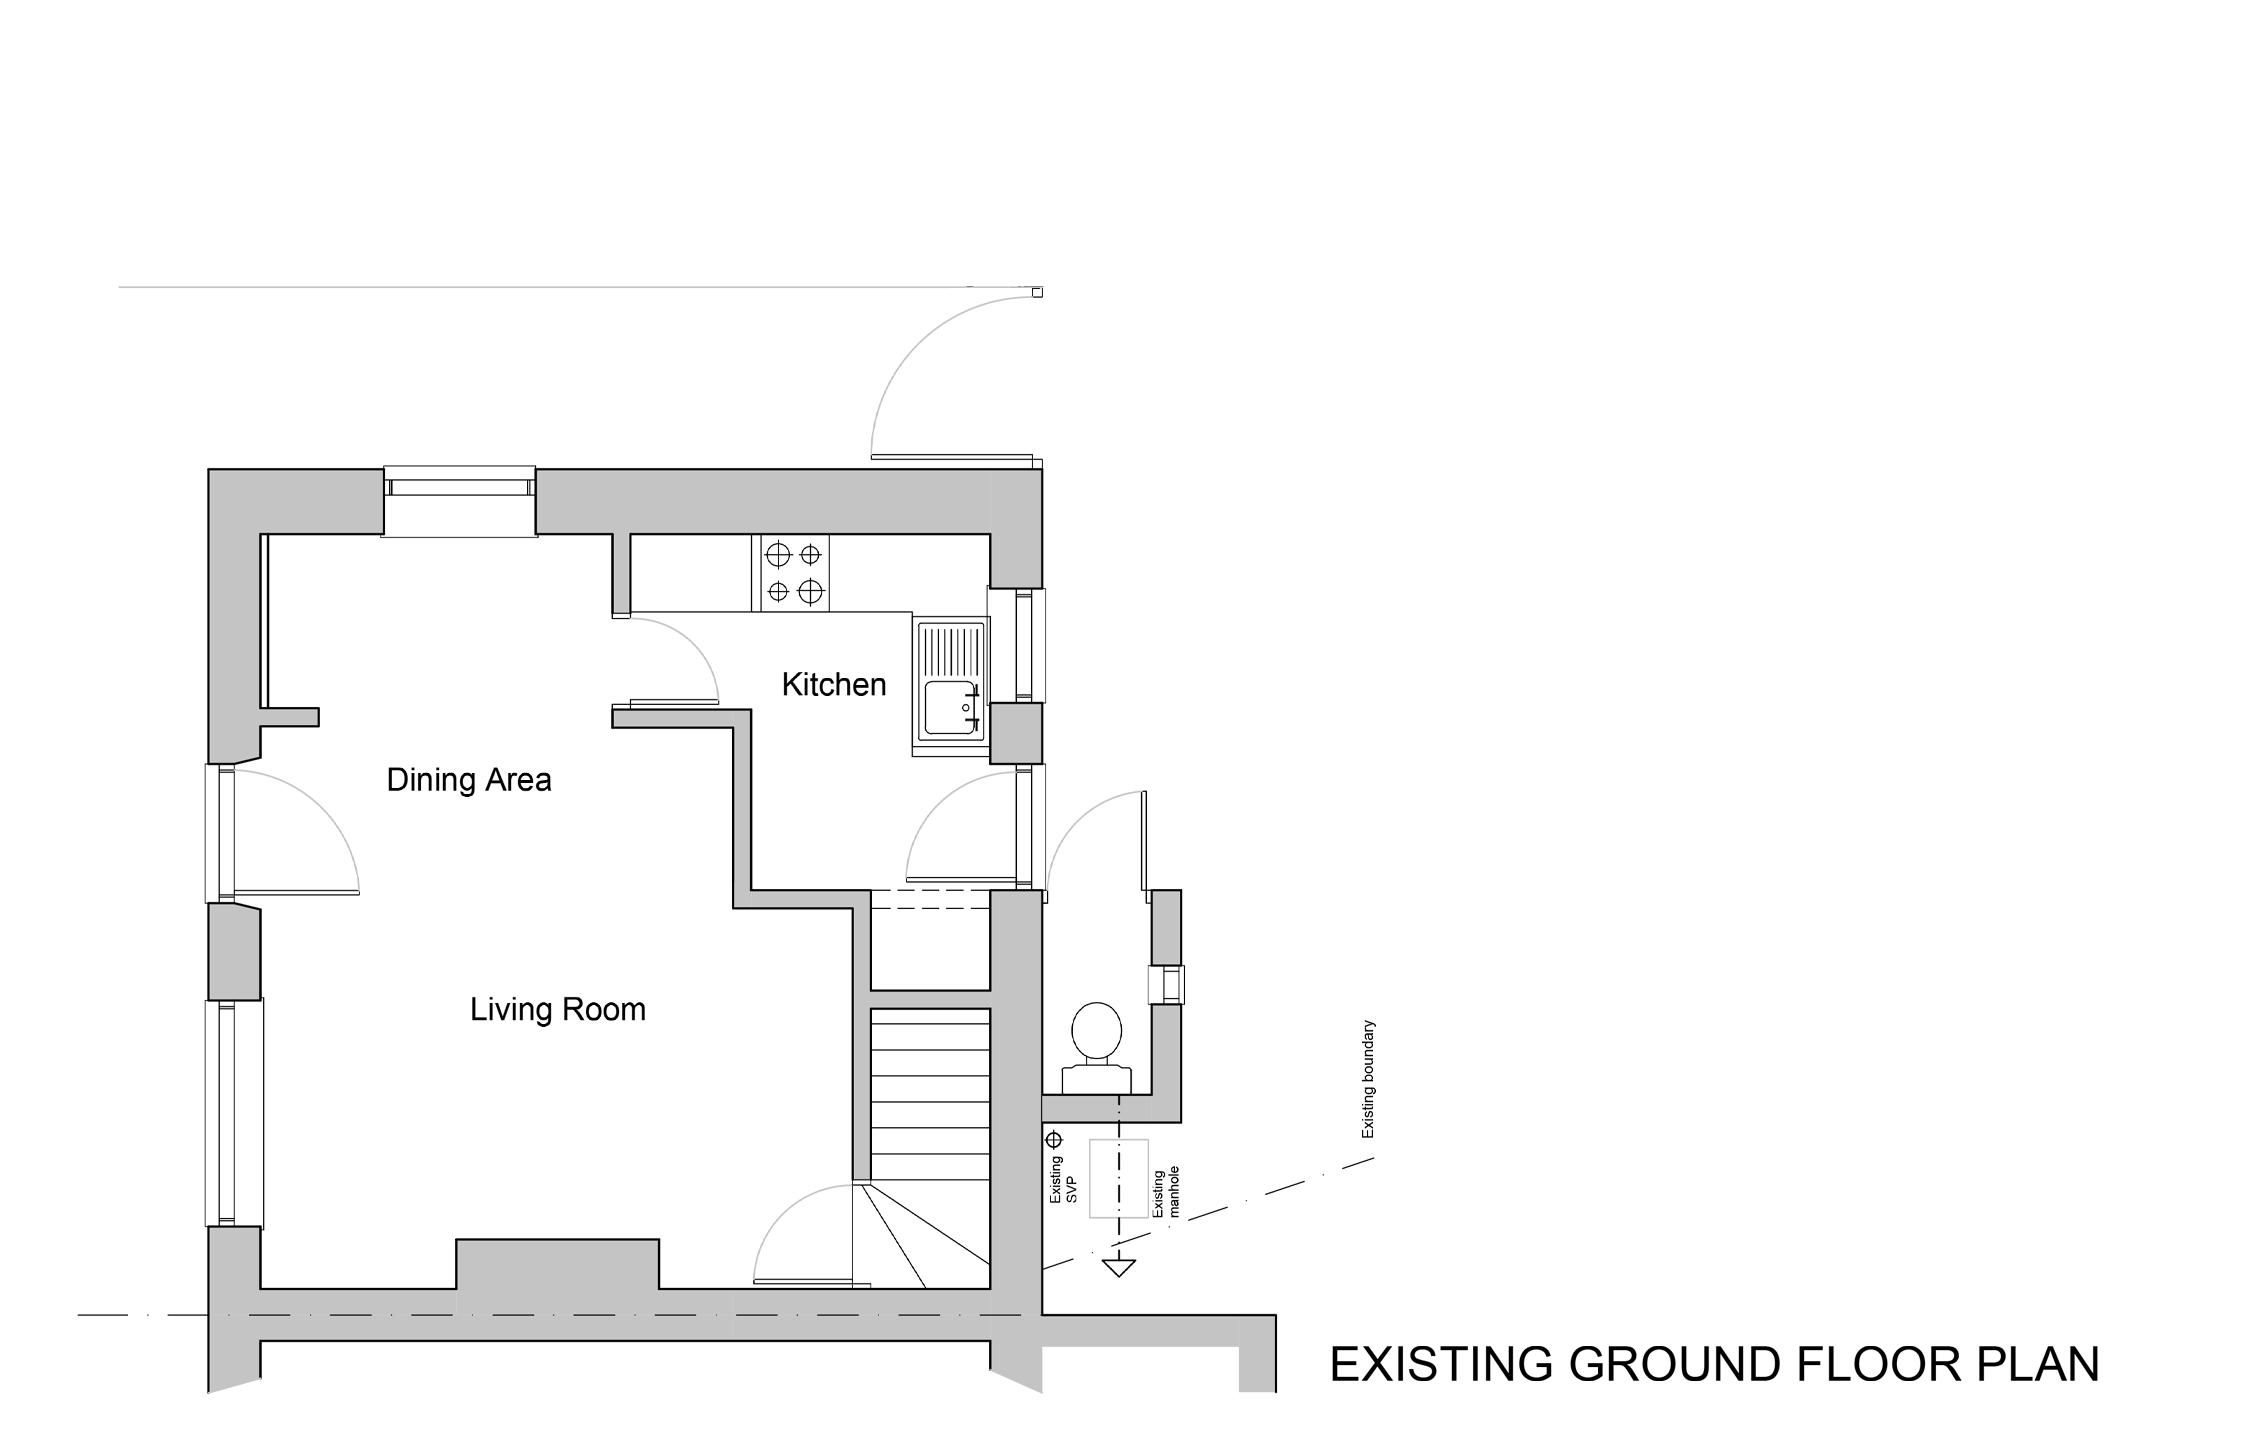 Existing Ground Floor